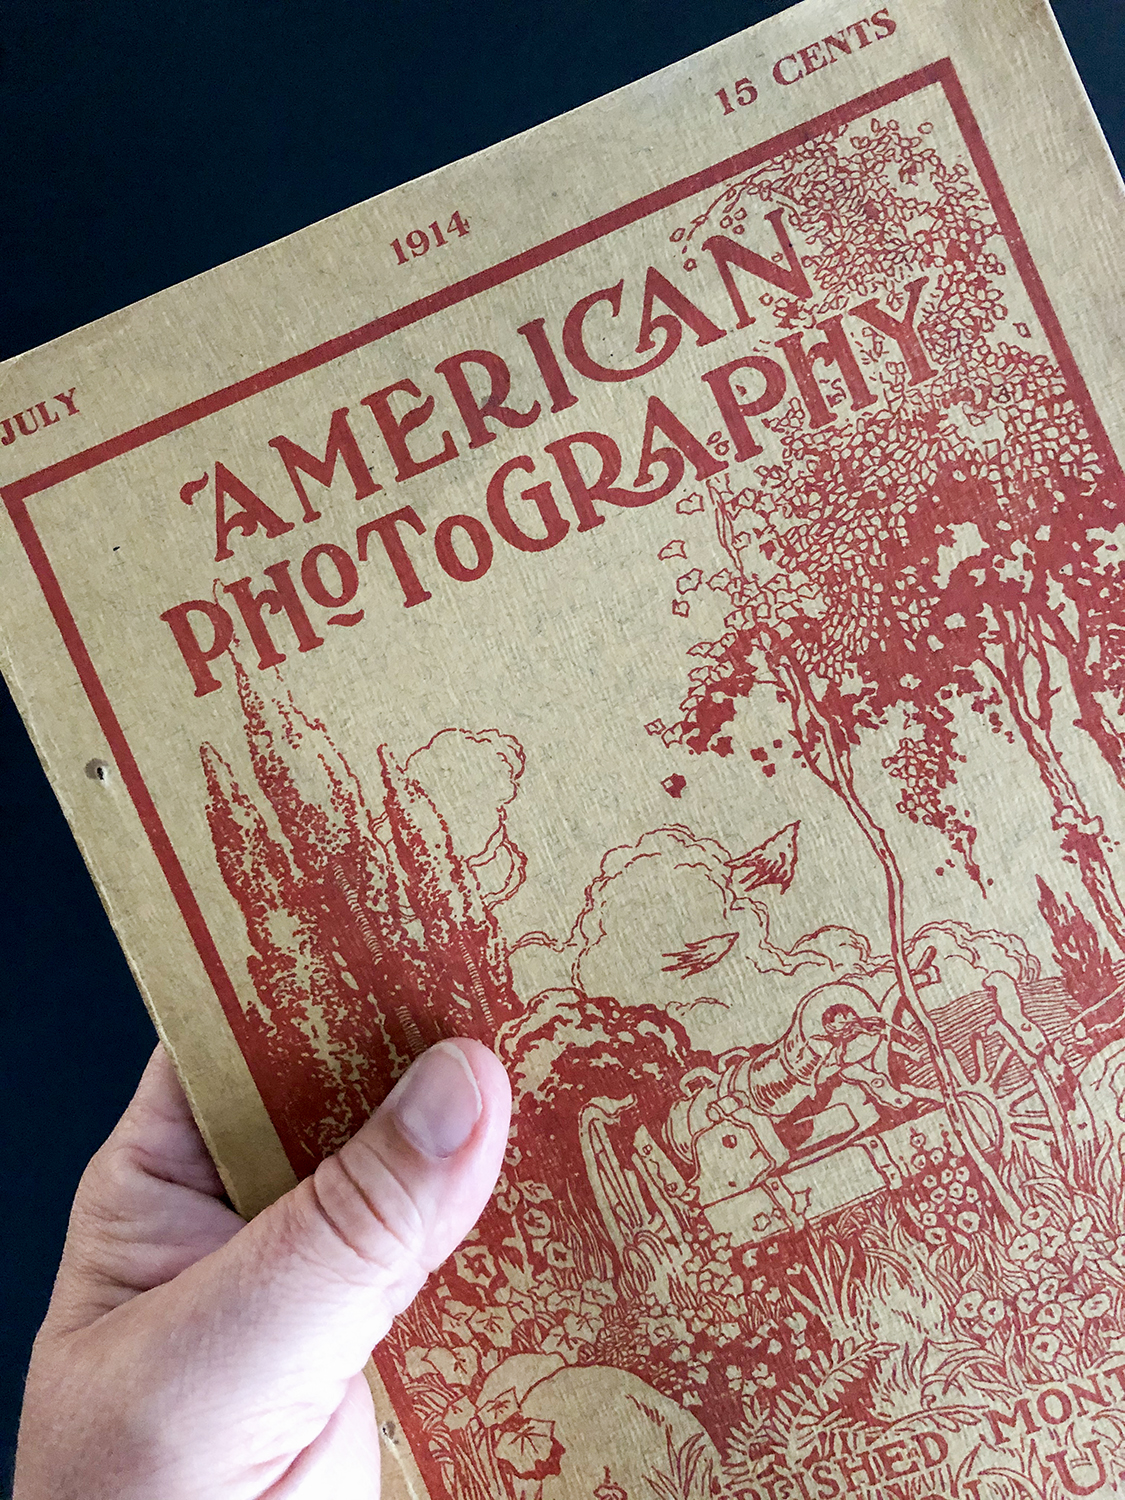 cover of American Photography magazine July 1914 issue